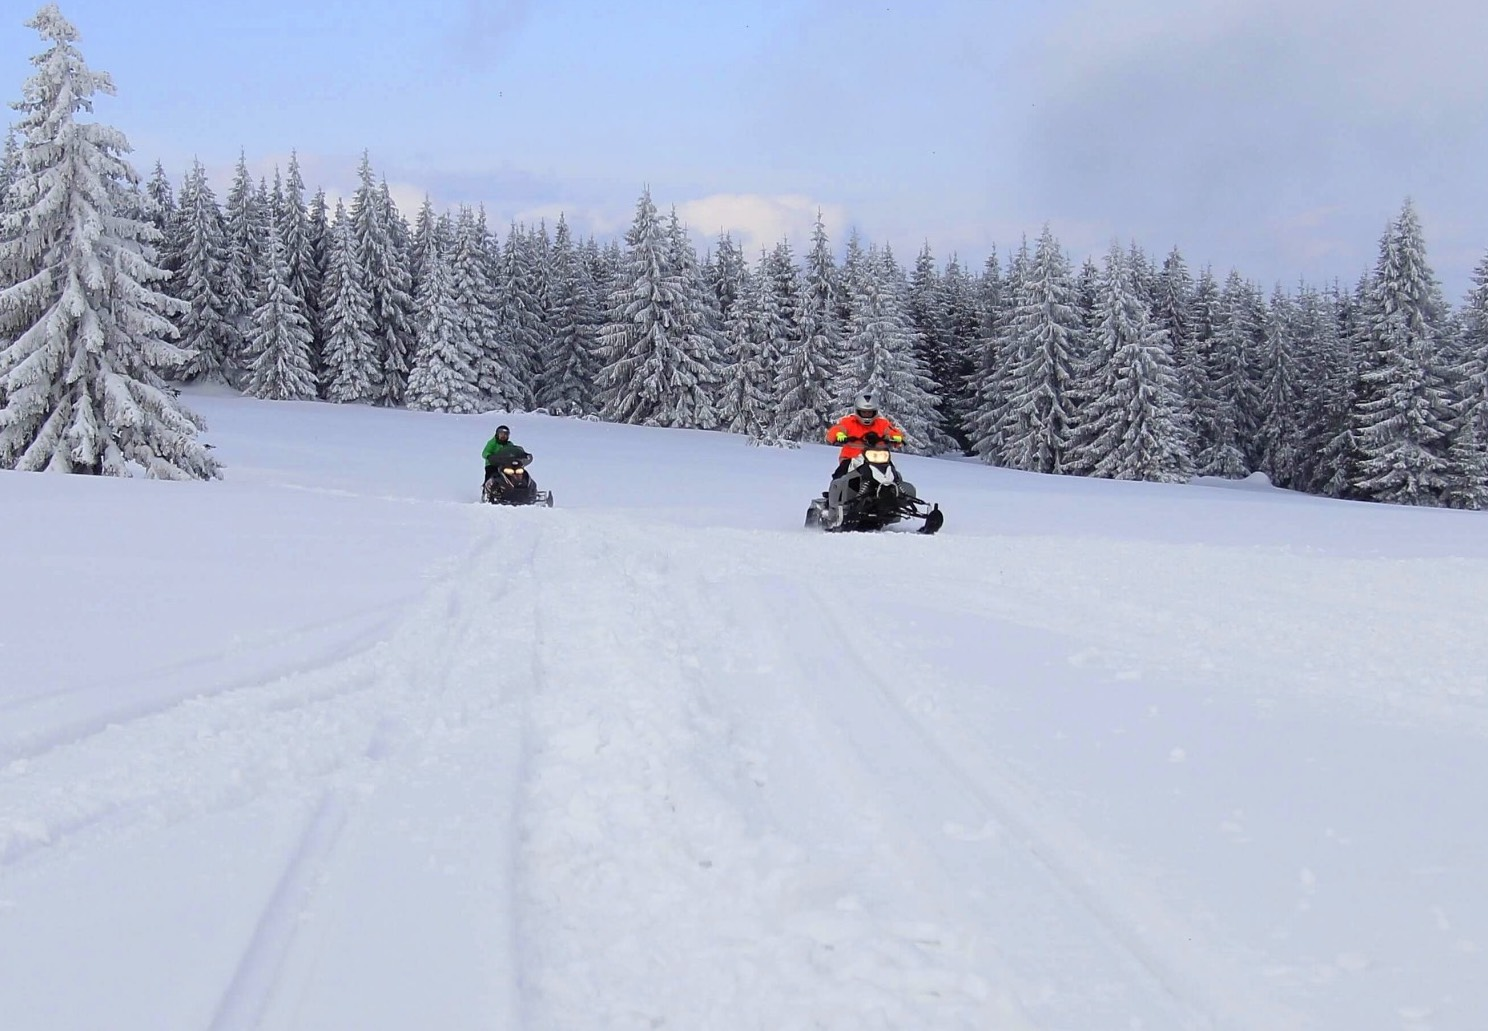 SNOW MOBILE ADVENTURE NEAR TATRA MOUNTAIN IN SLOVAKIA DUPLIK